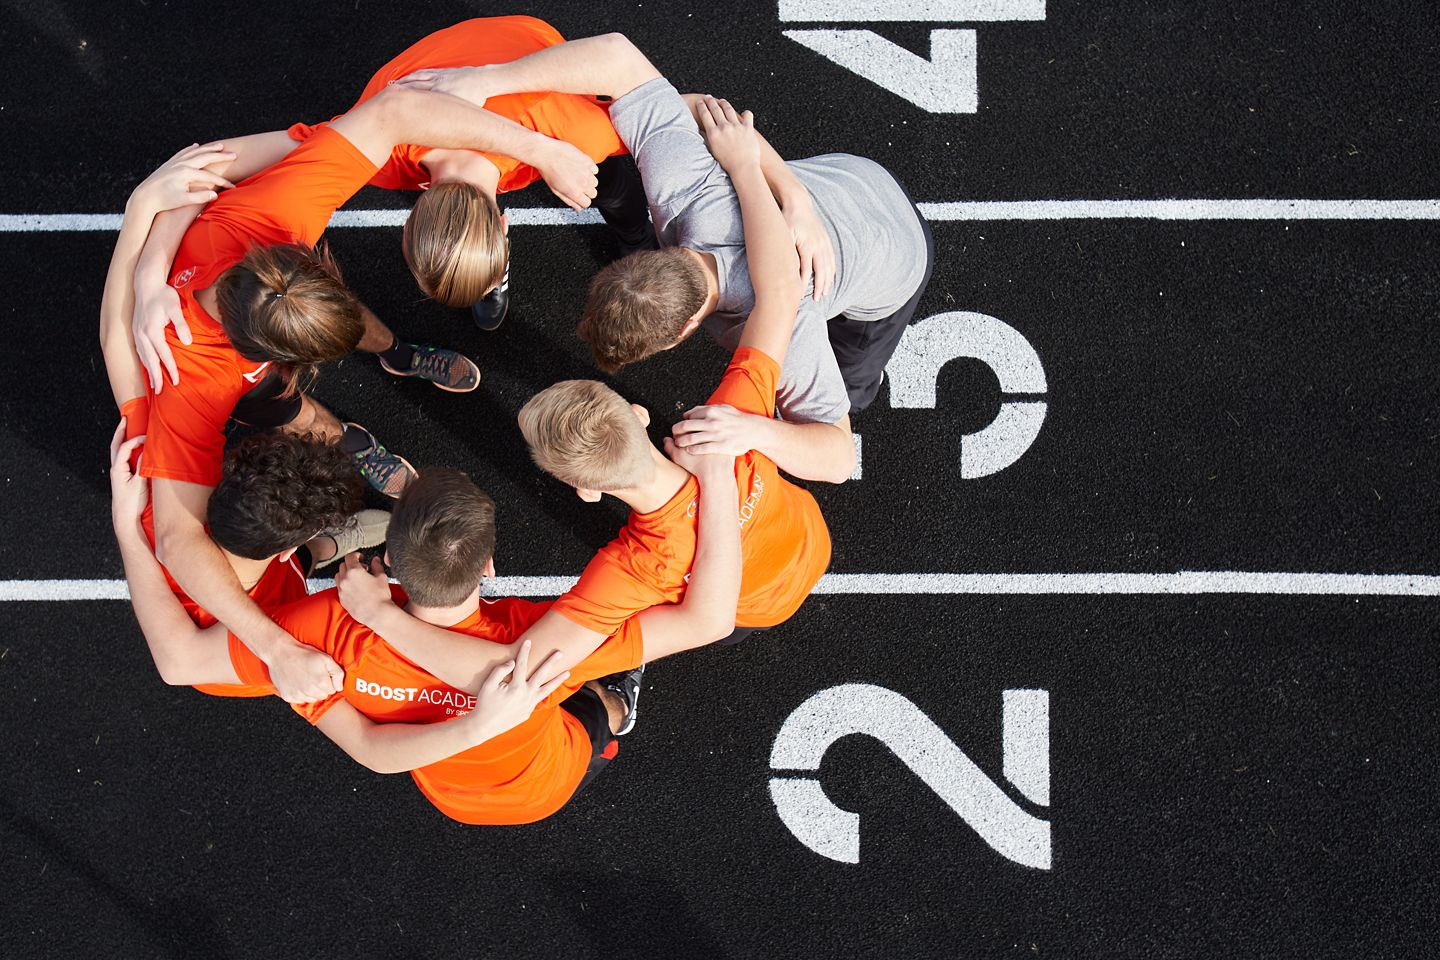 youth in a huddle on a sports track